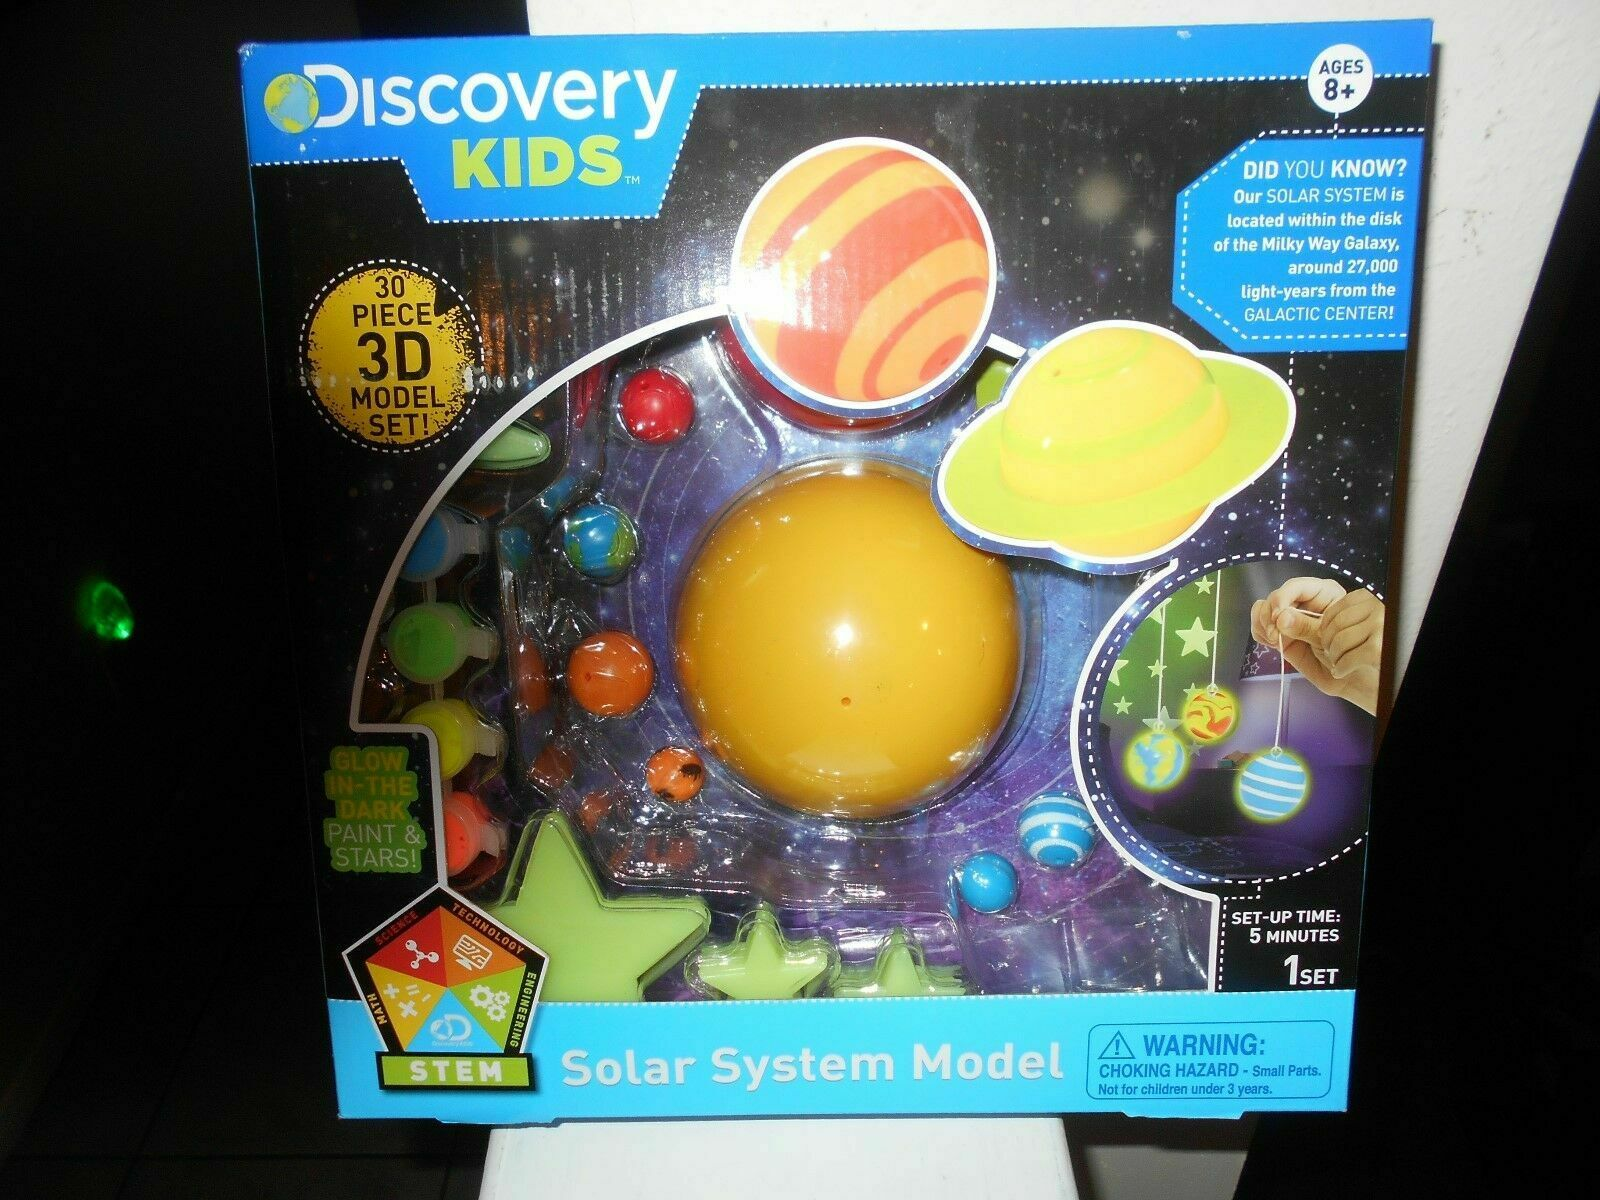 Discovery Kids 3d Glowing Solar System Science Planet Model Kit (ages 8 )